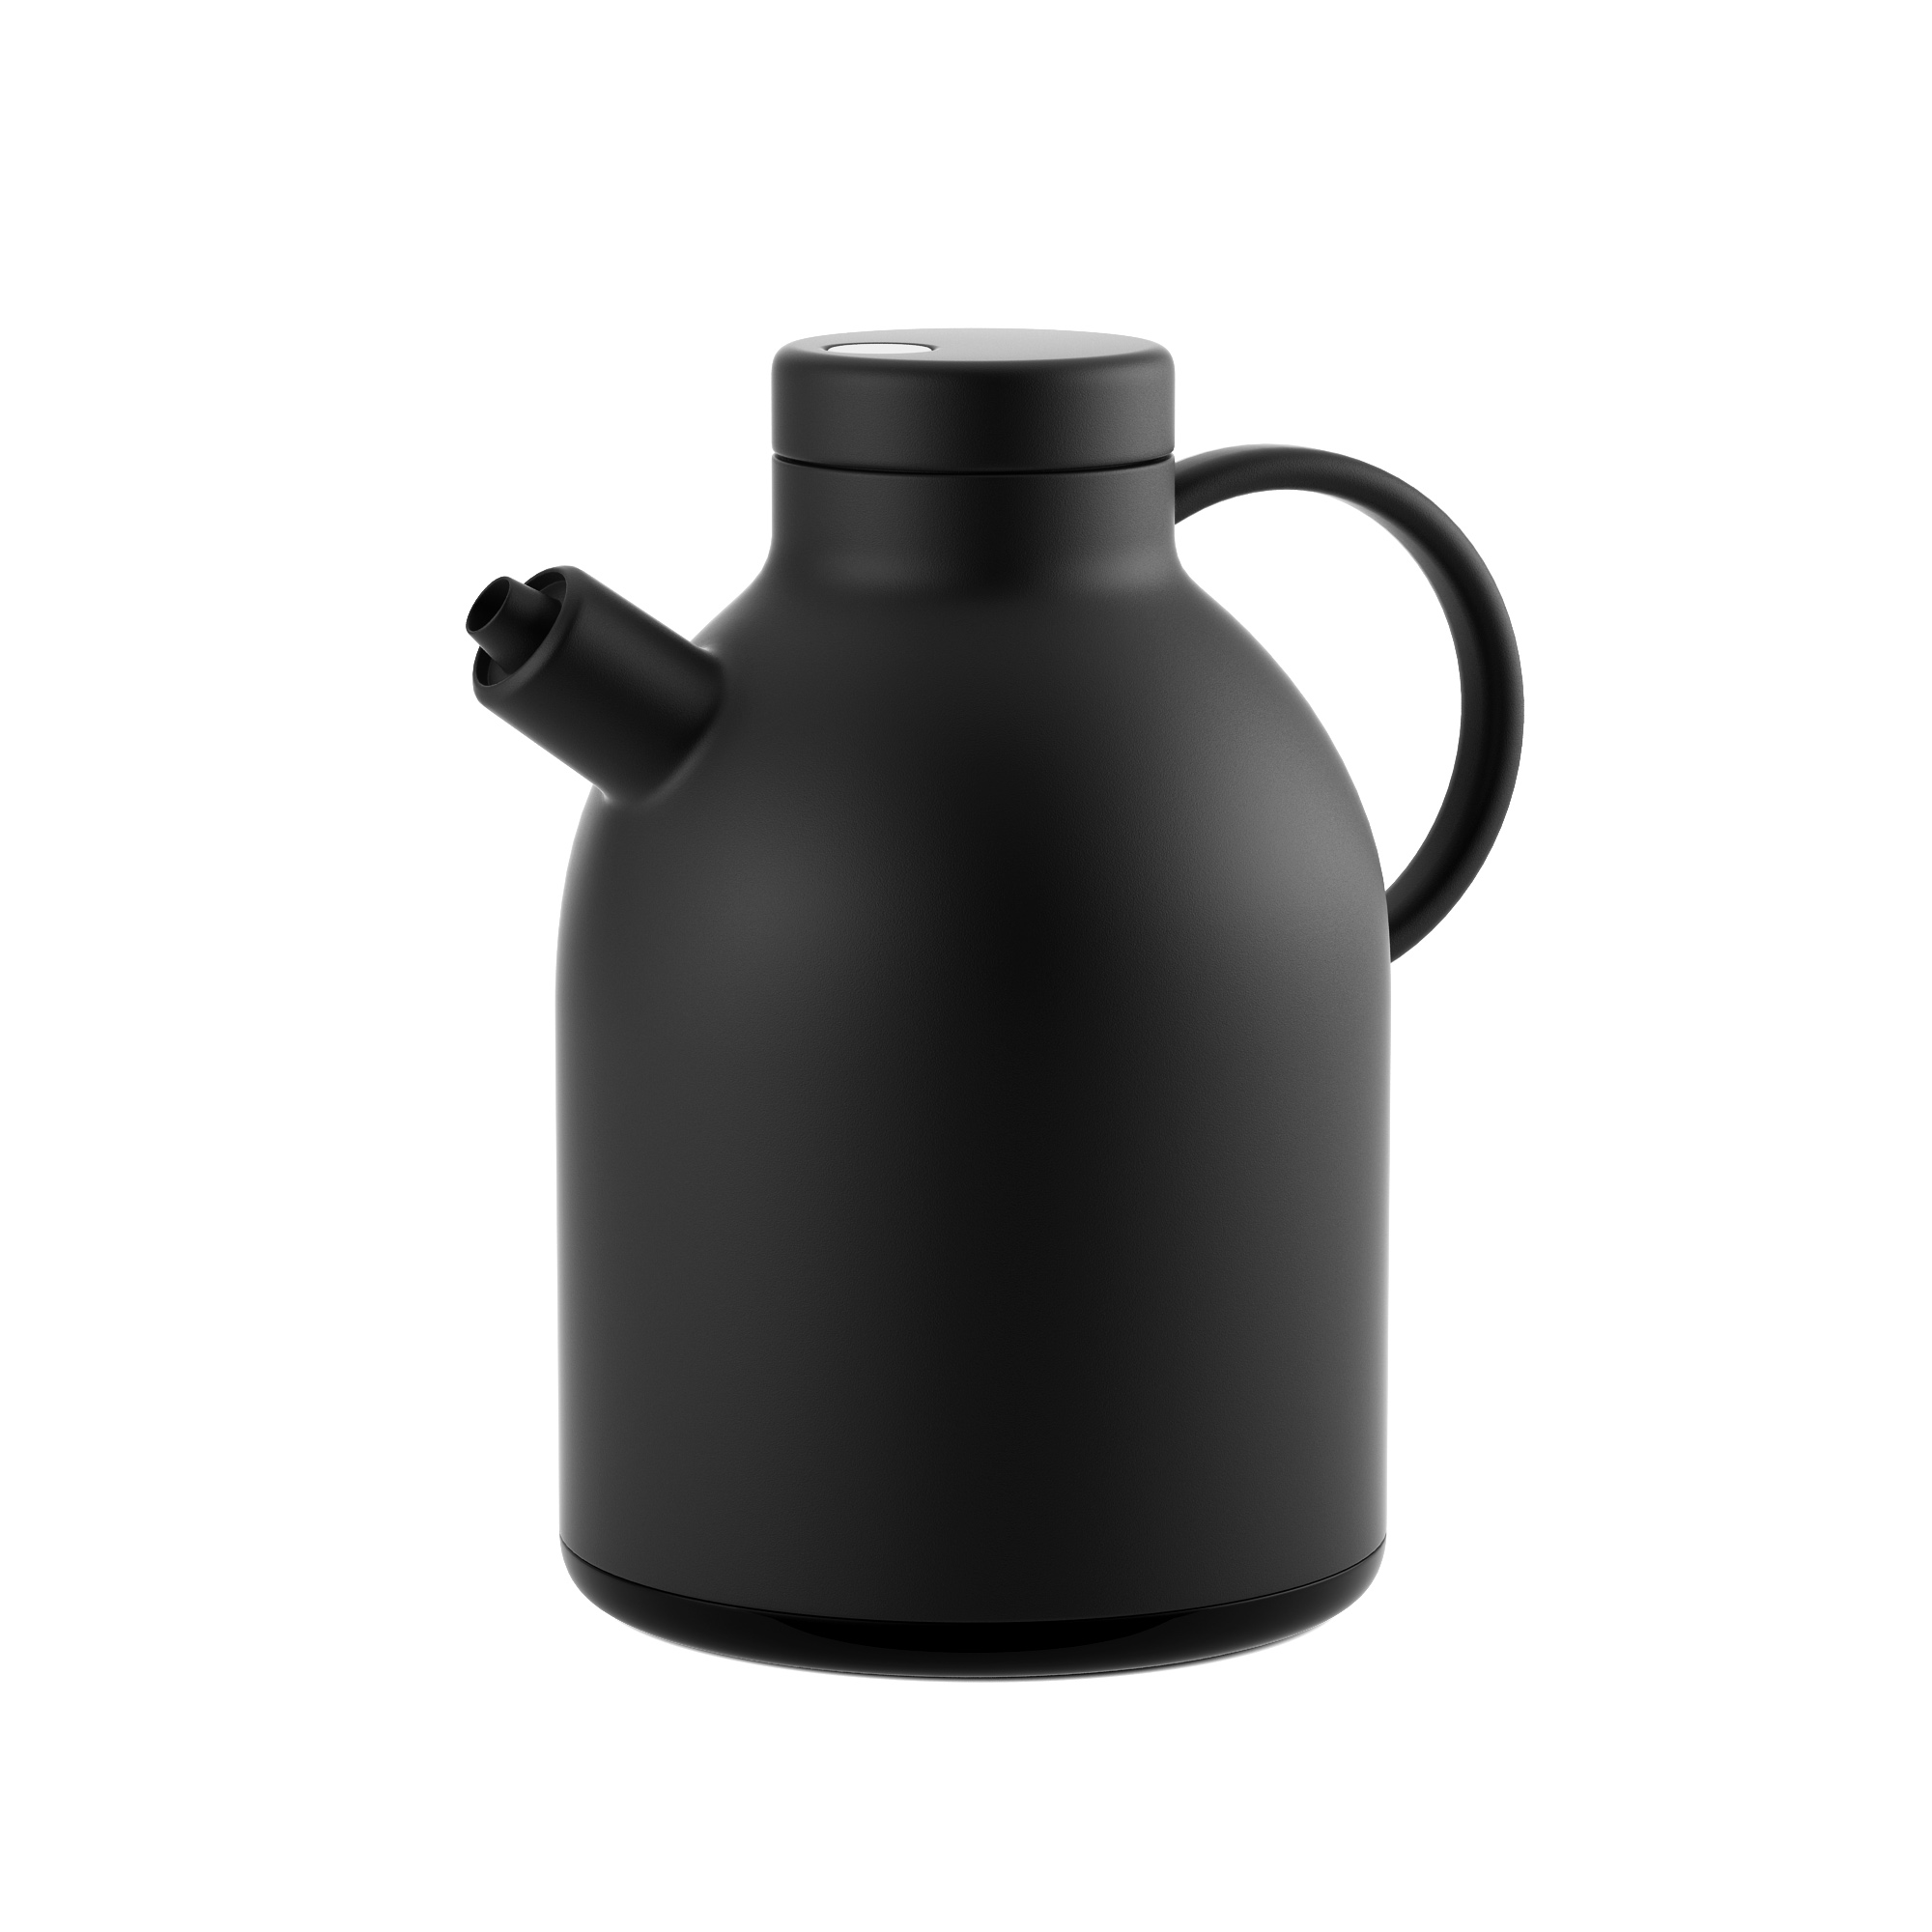 Kettle Thermo Jug by Menu